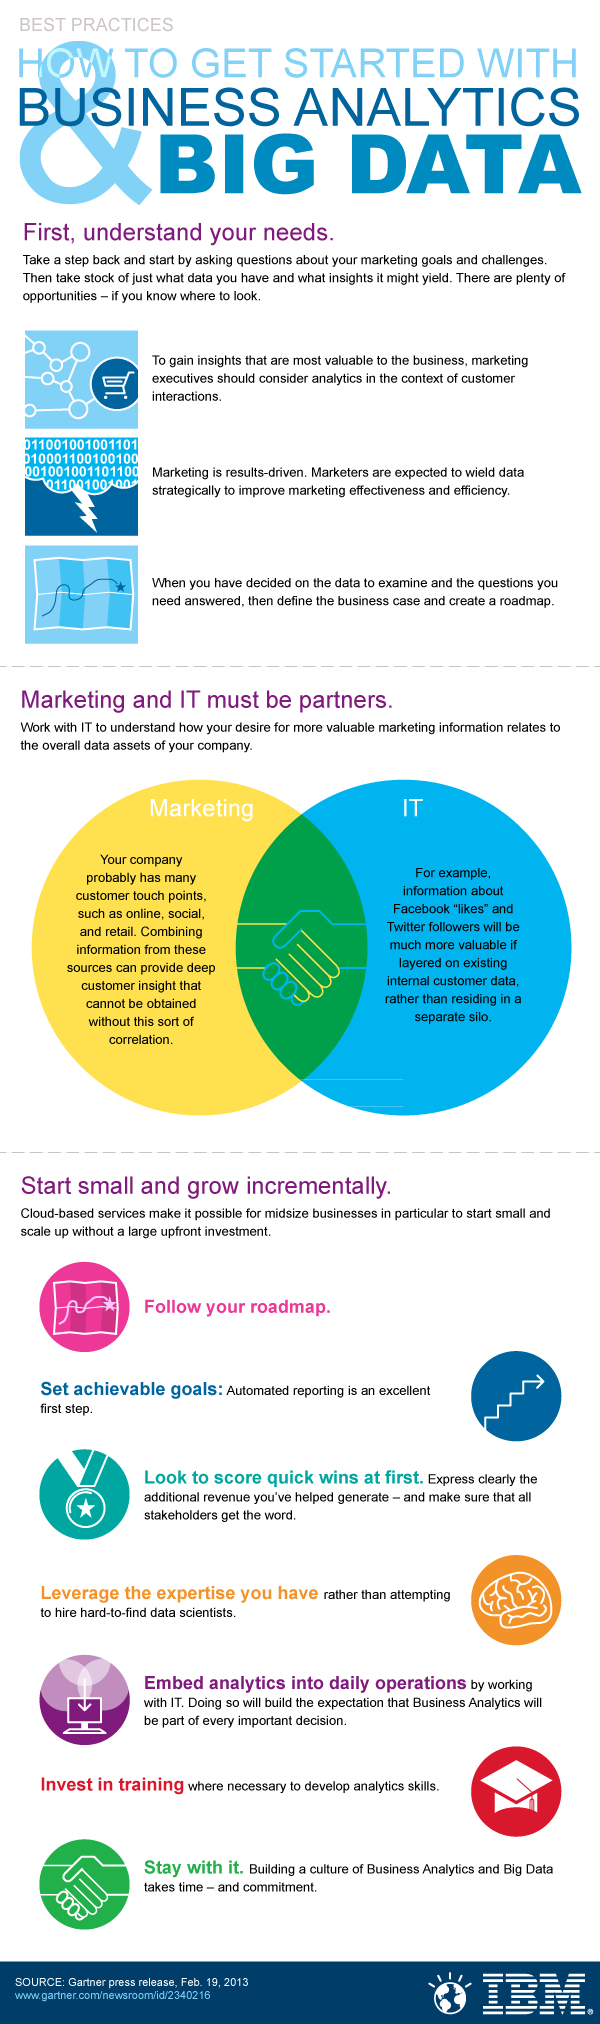 IBM Big Data Best Practices Infographic